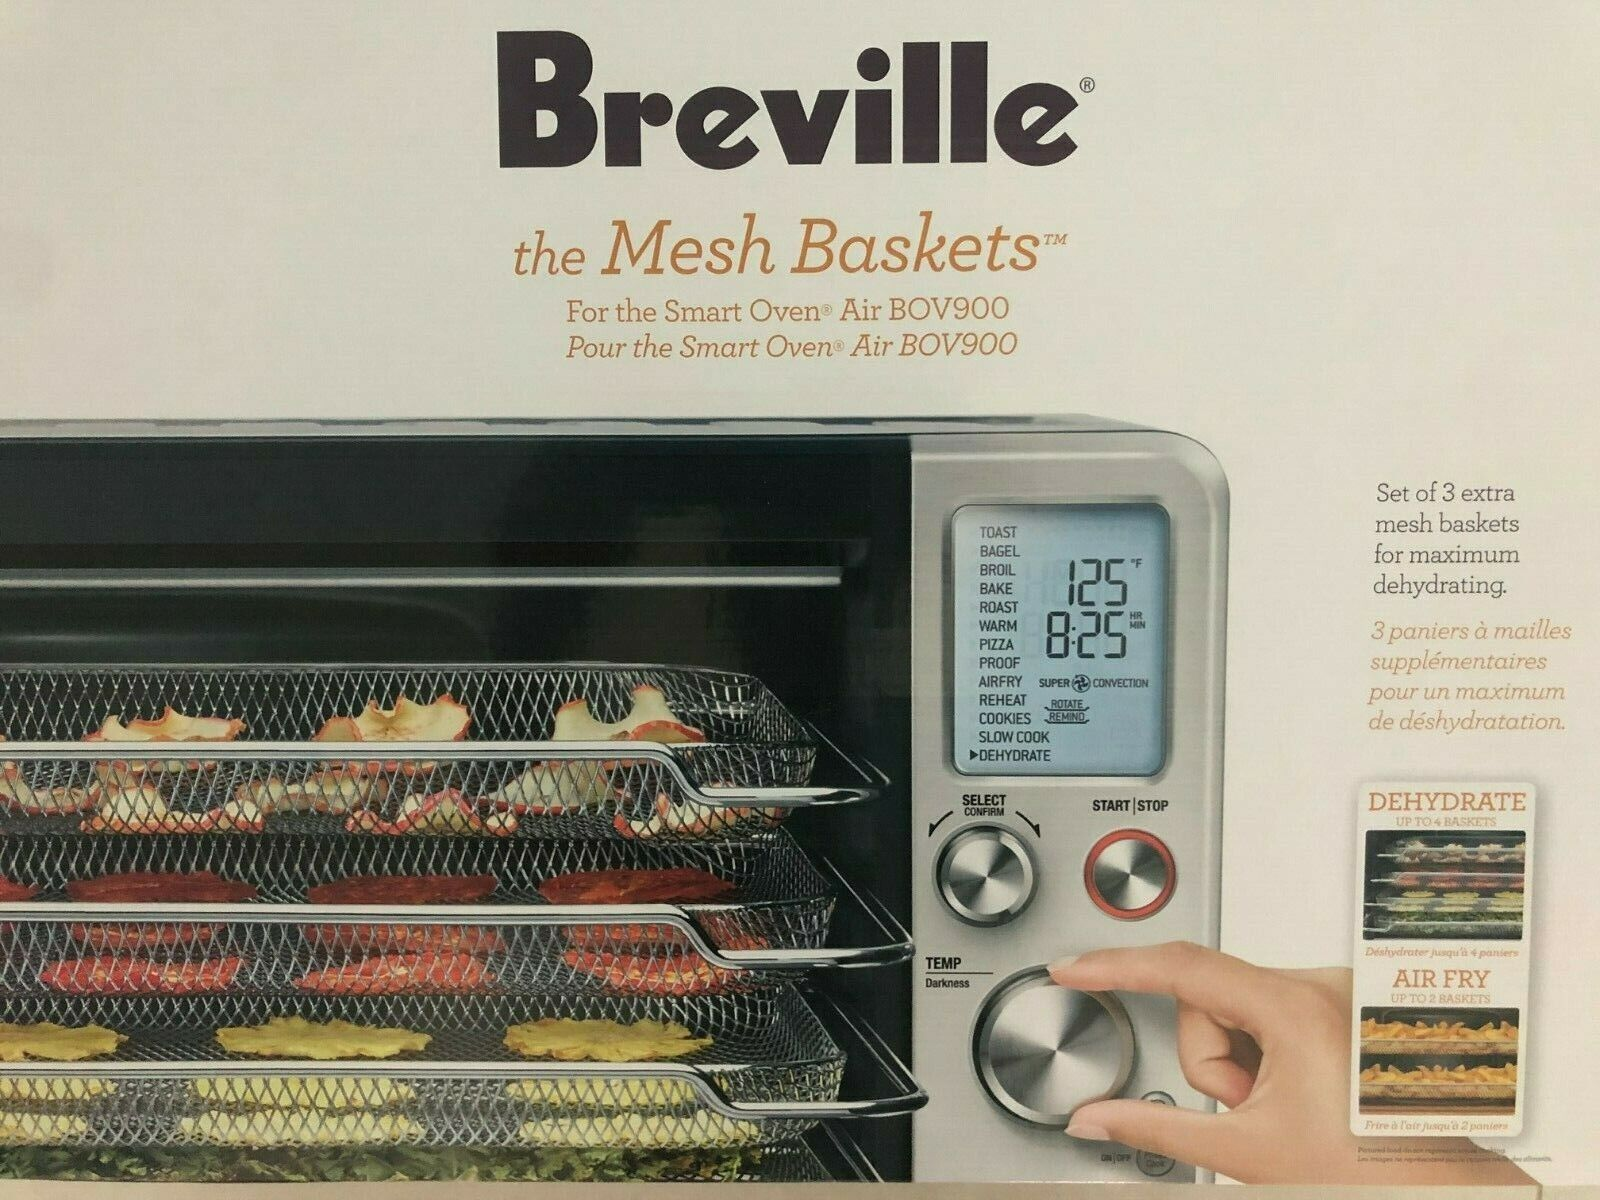 BRAND NEW BREVILLE THE MESH BASKETS FOR THE SMART OVEN AIR - SET OF 3 BASKETS!